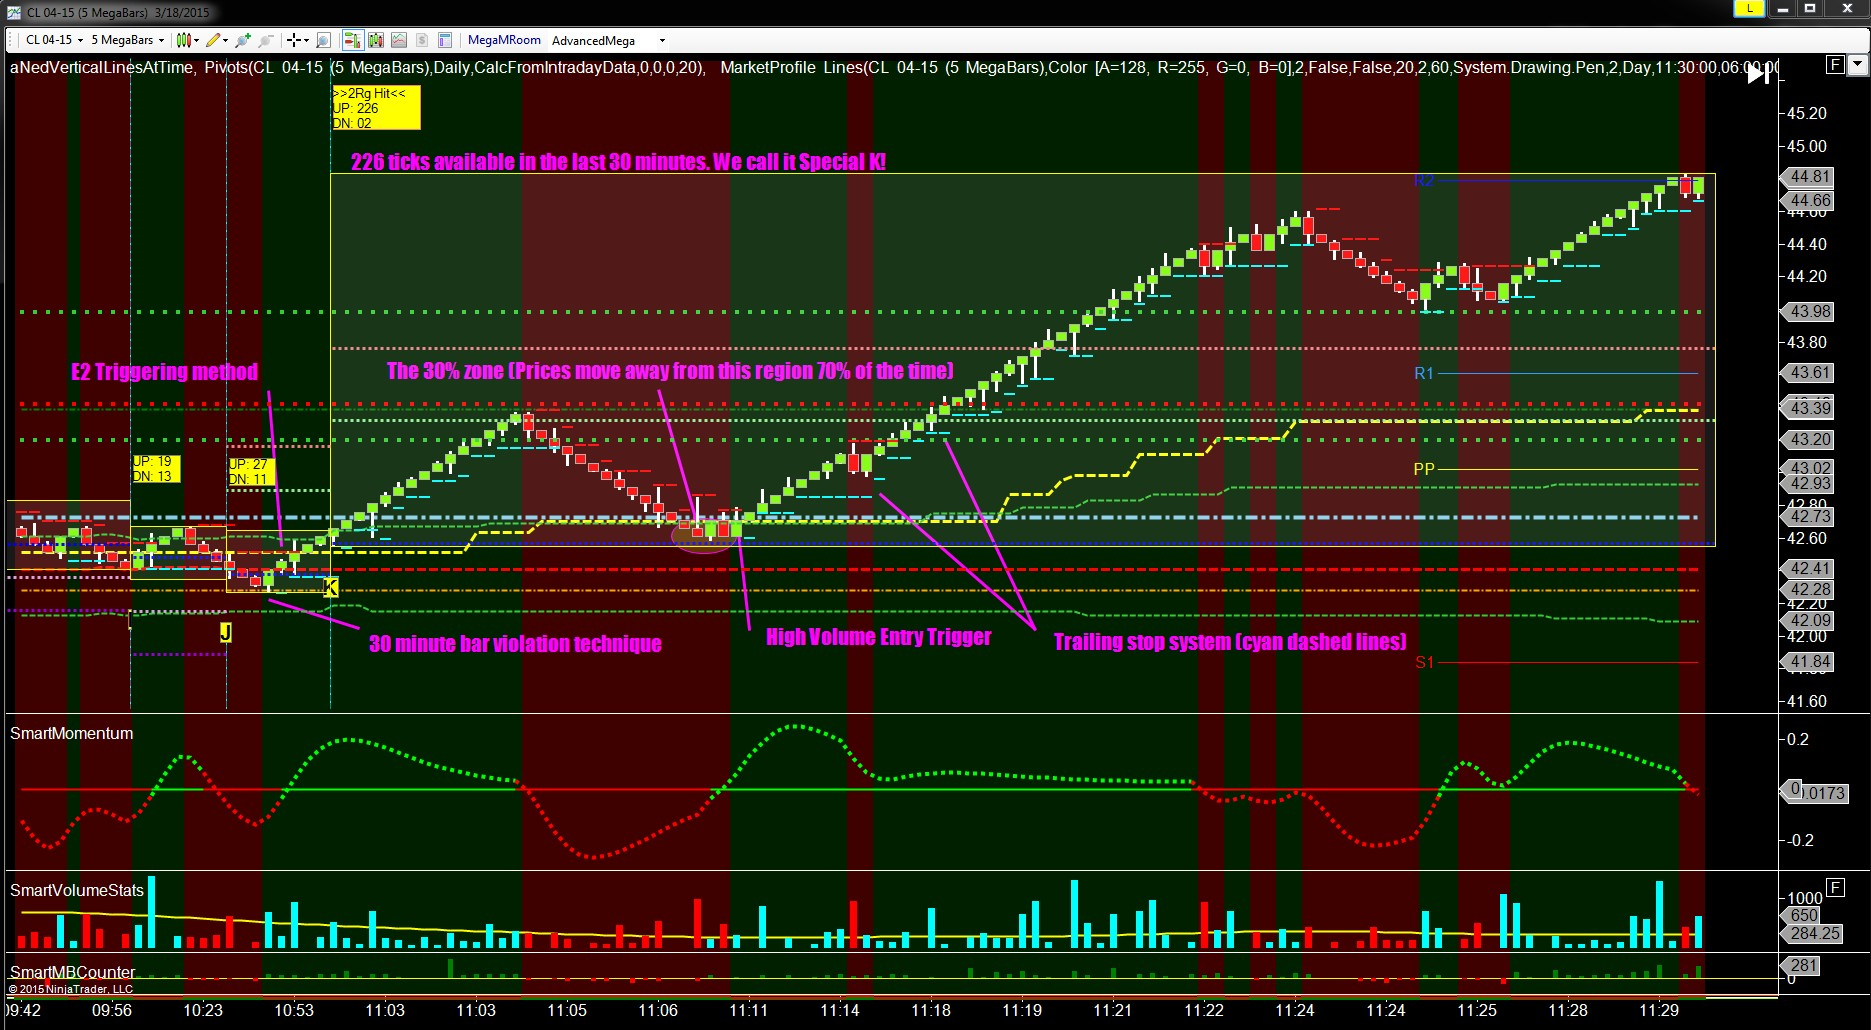 Live Trading Room Crude Oil